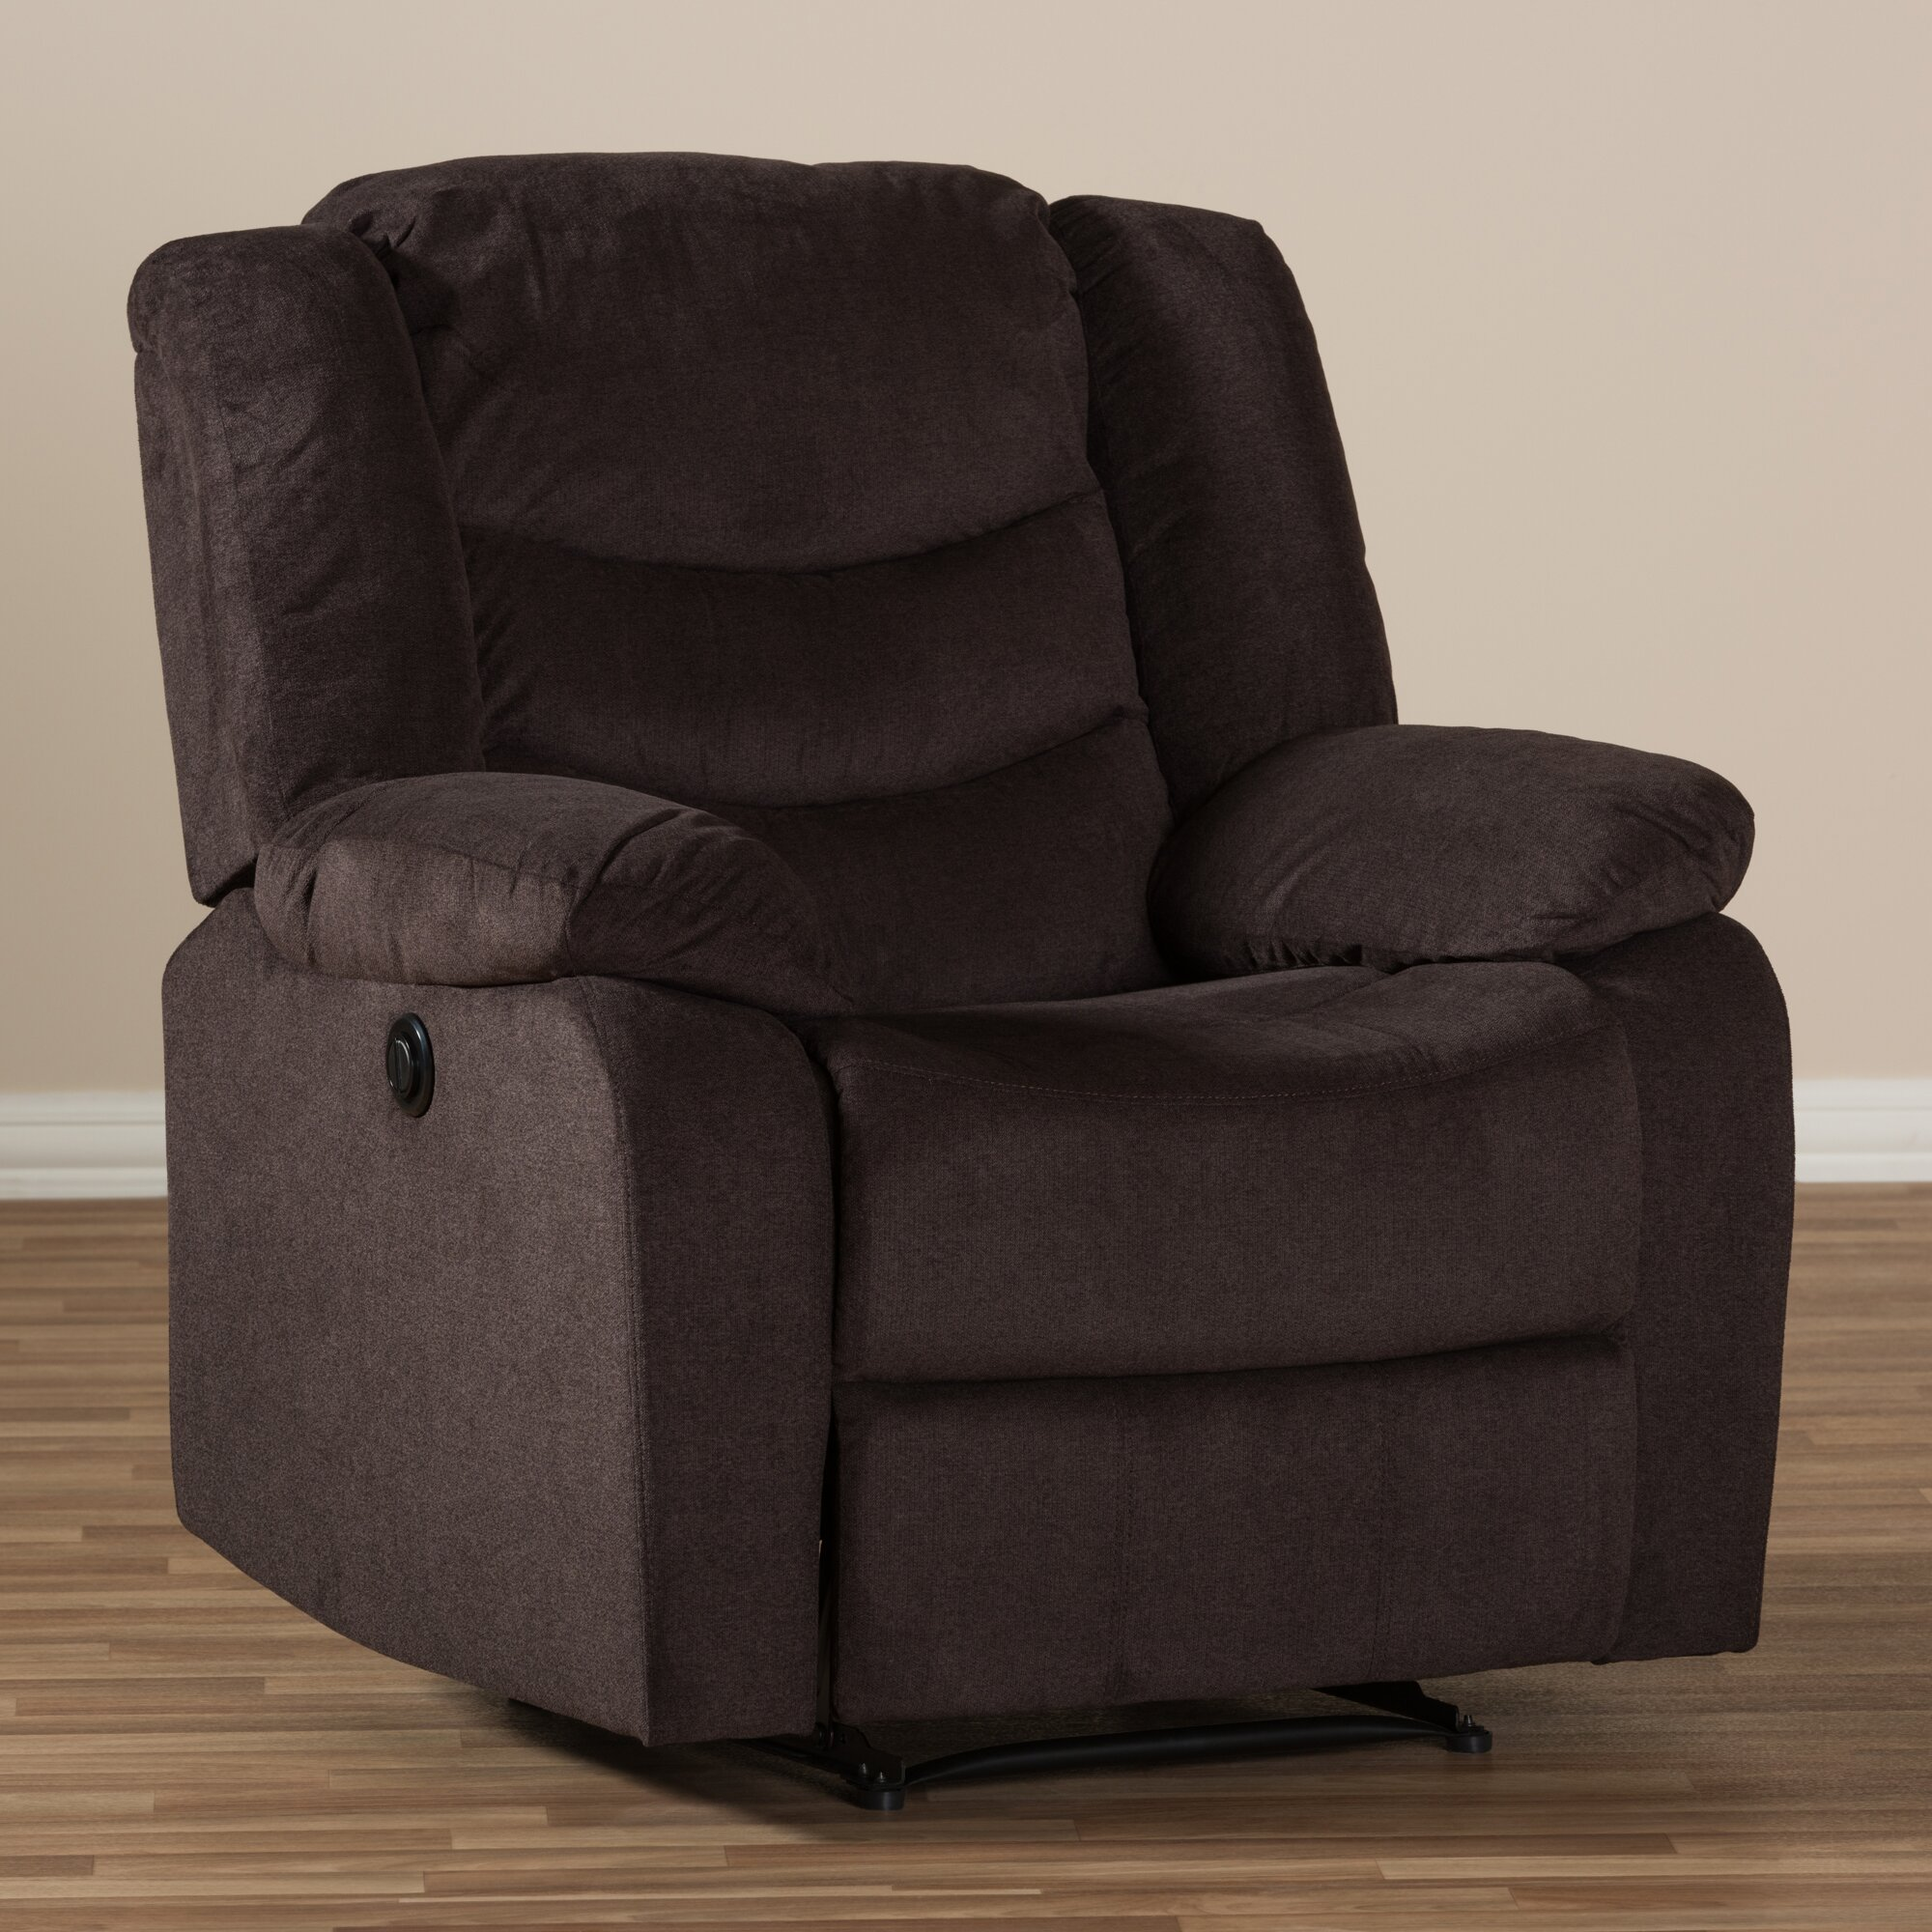 Wholesale interiors baxton studio lia fabric power for Electric recliners reviews